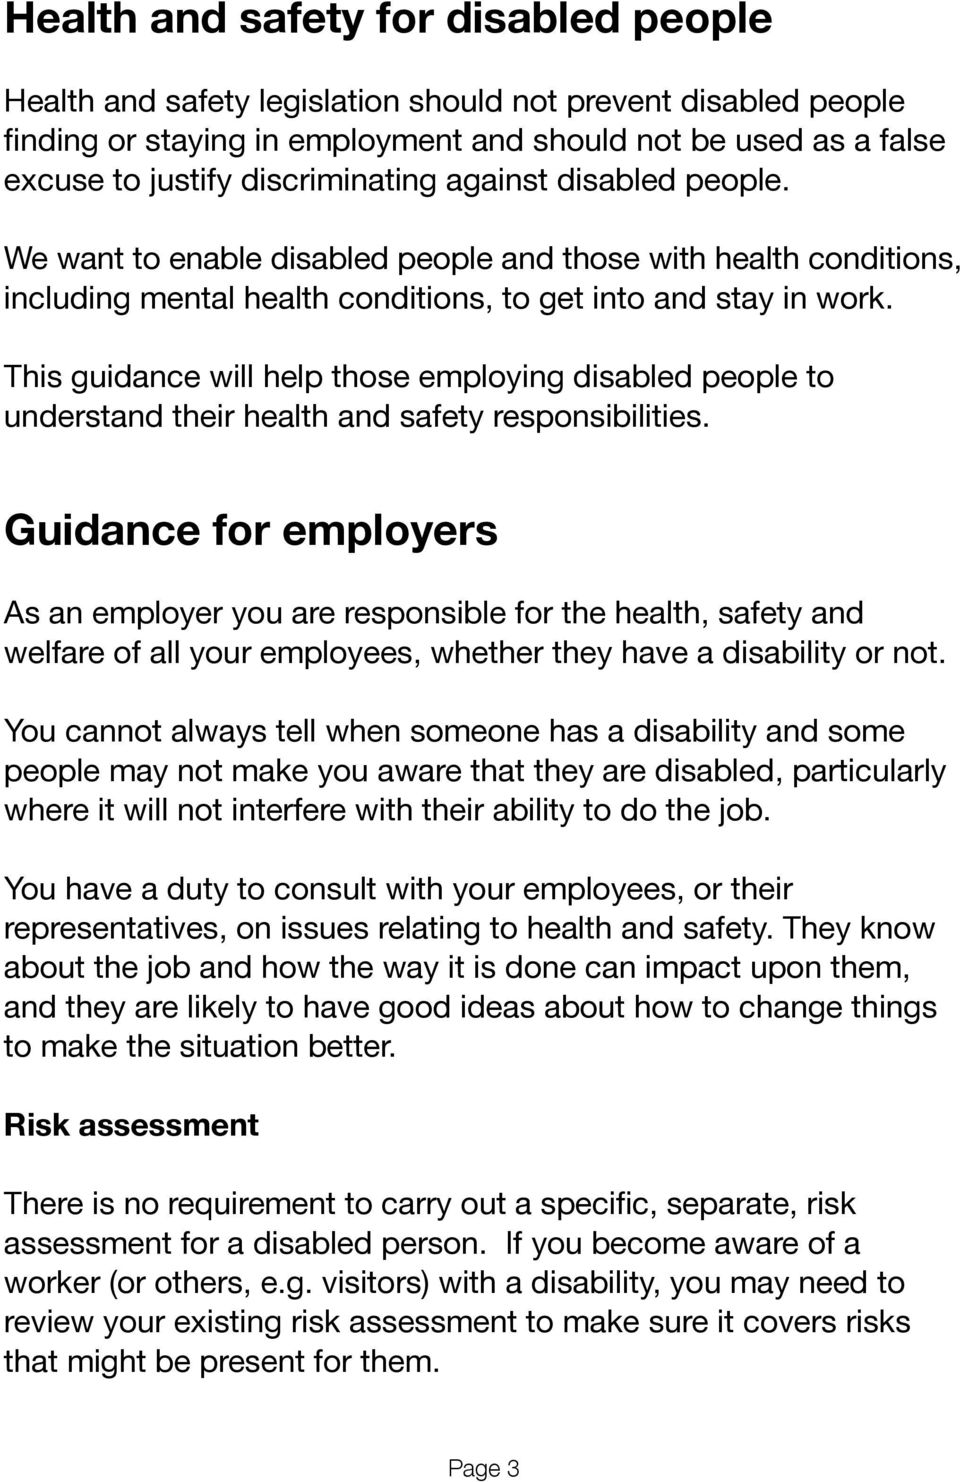 This guidance will help those employing disabled people to understand their health and safety responsibilities.